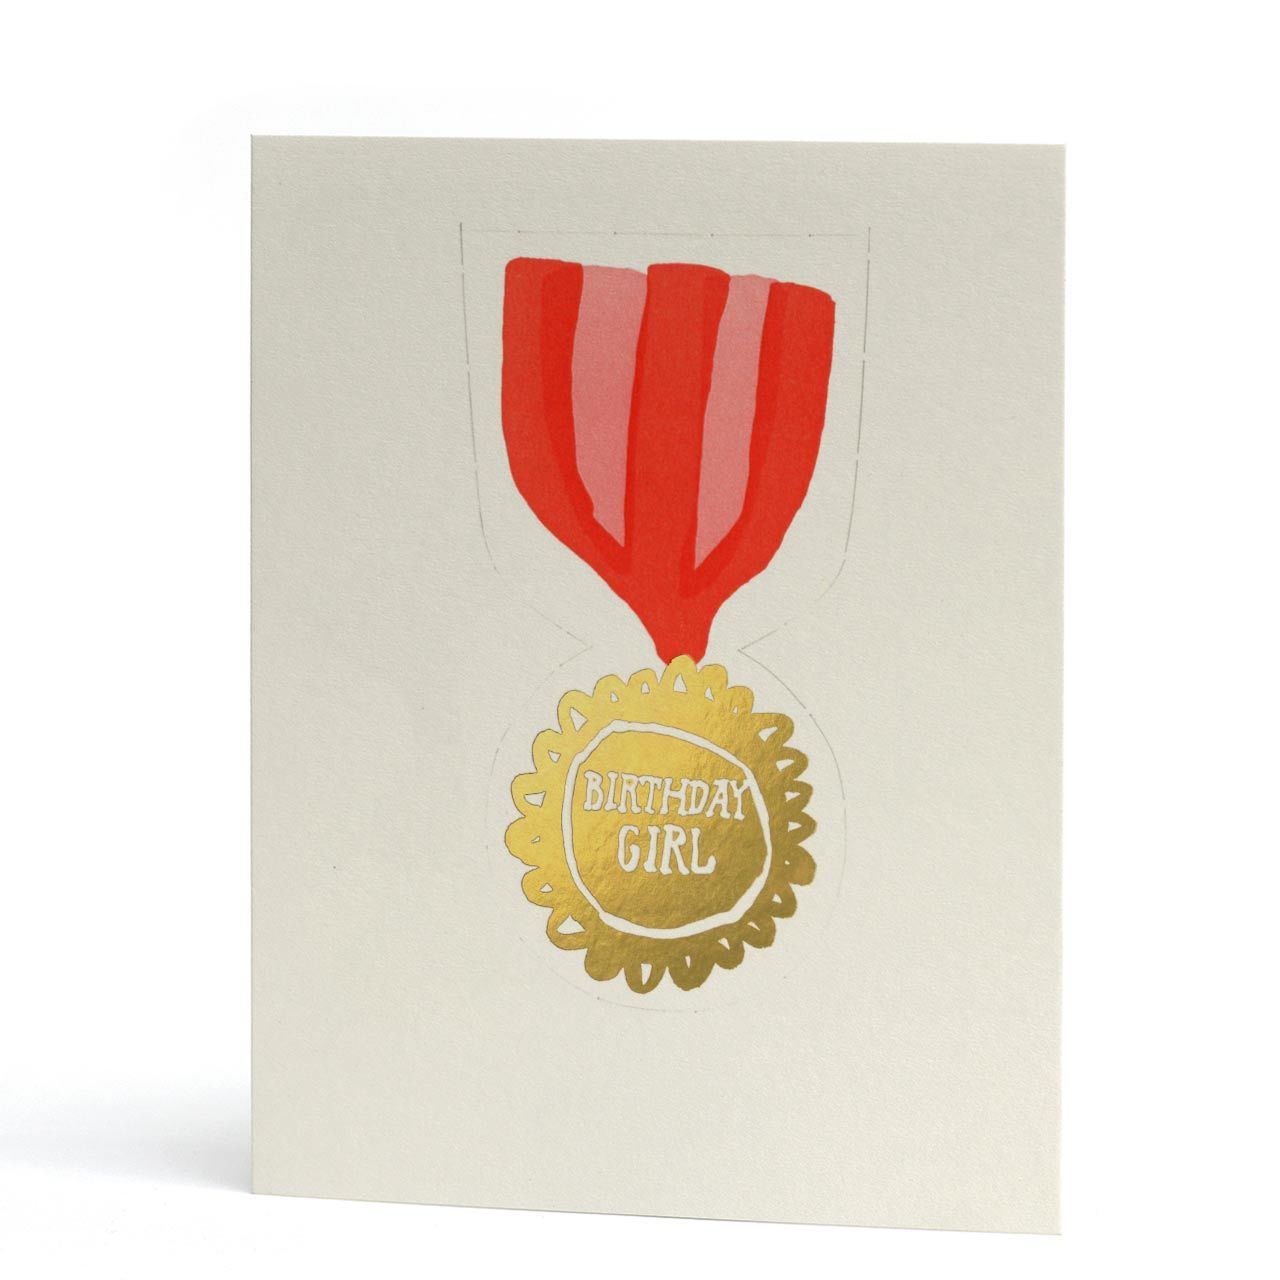 Birthday Girl Pop-Out Badge Letterpress Greeting Card